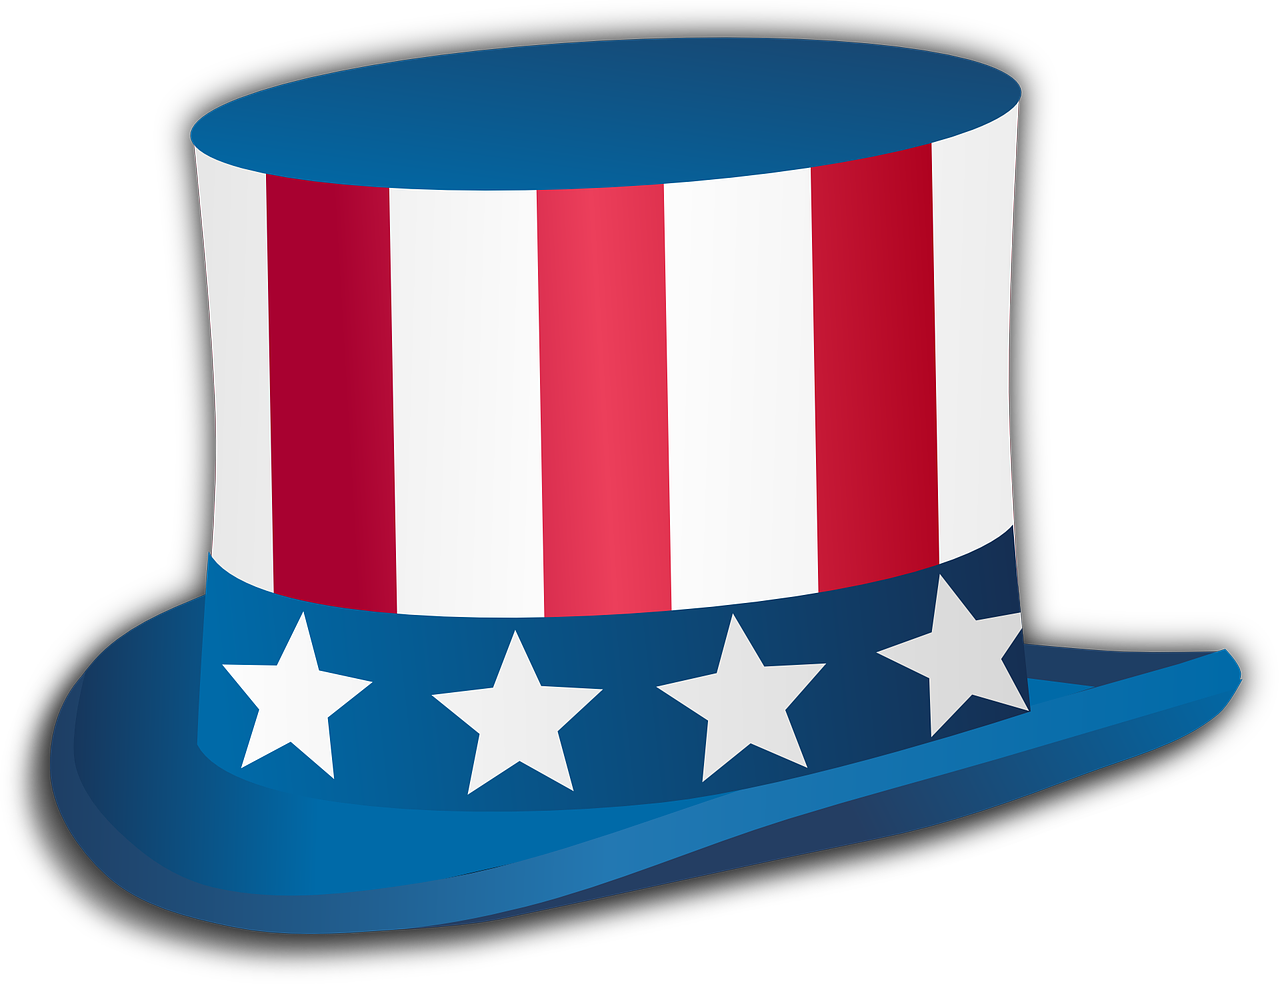 Political parties and symbols. July clipart patriotic symbol